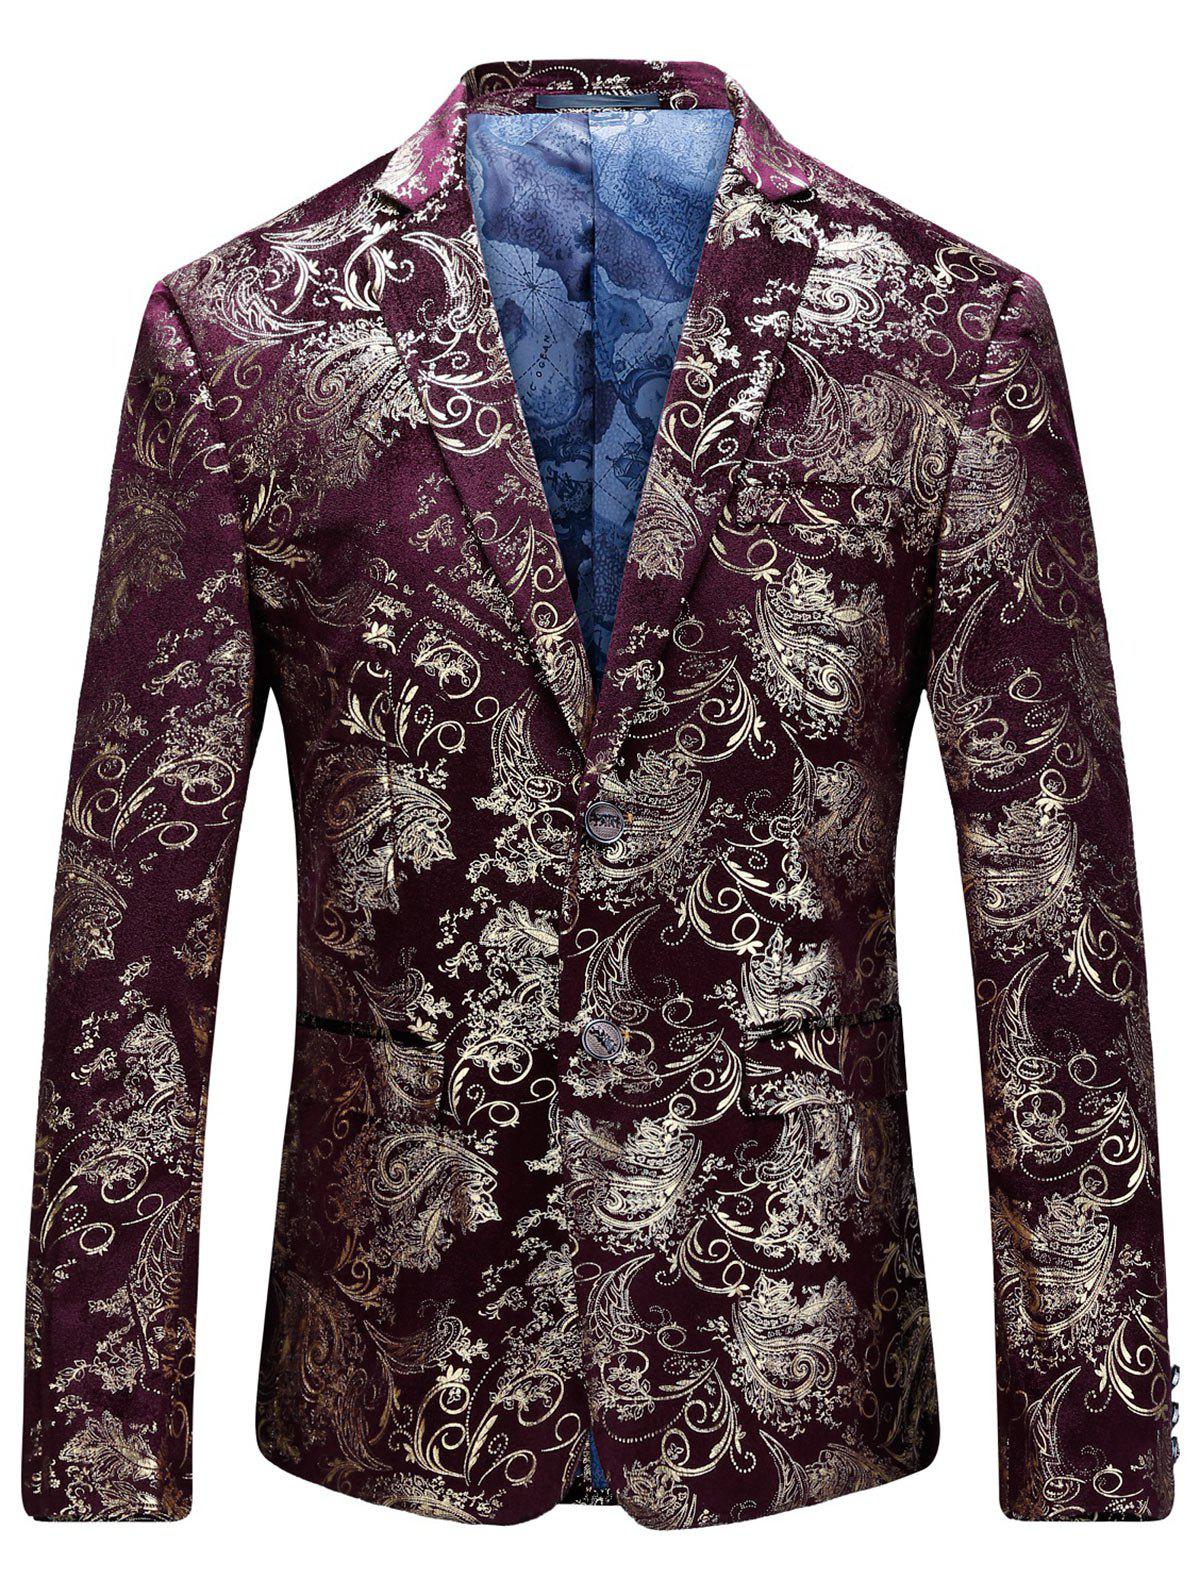 Floral Gilding Flap Pocket Blazer - WINE RED 50